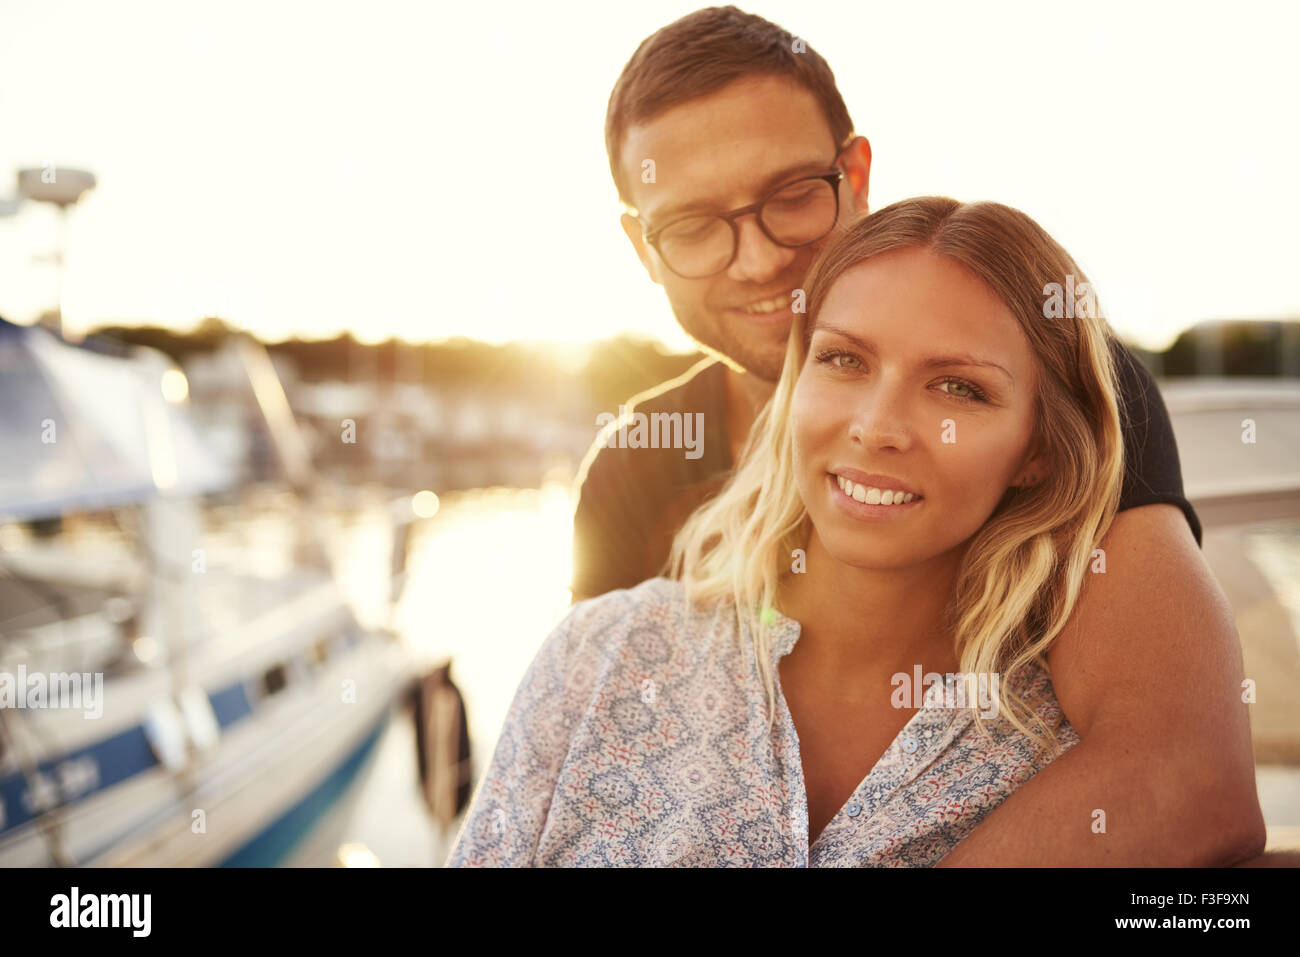 White Loving Couple on A Boat, Smiling at Camera - Stock Image